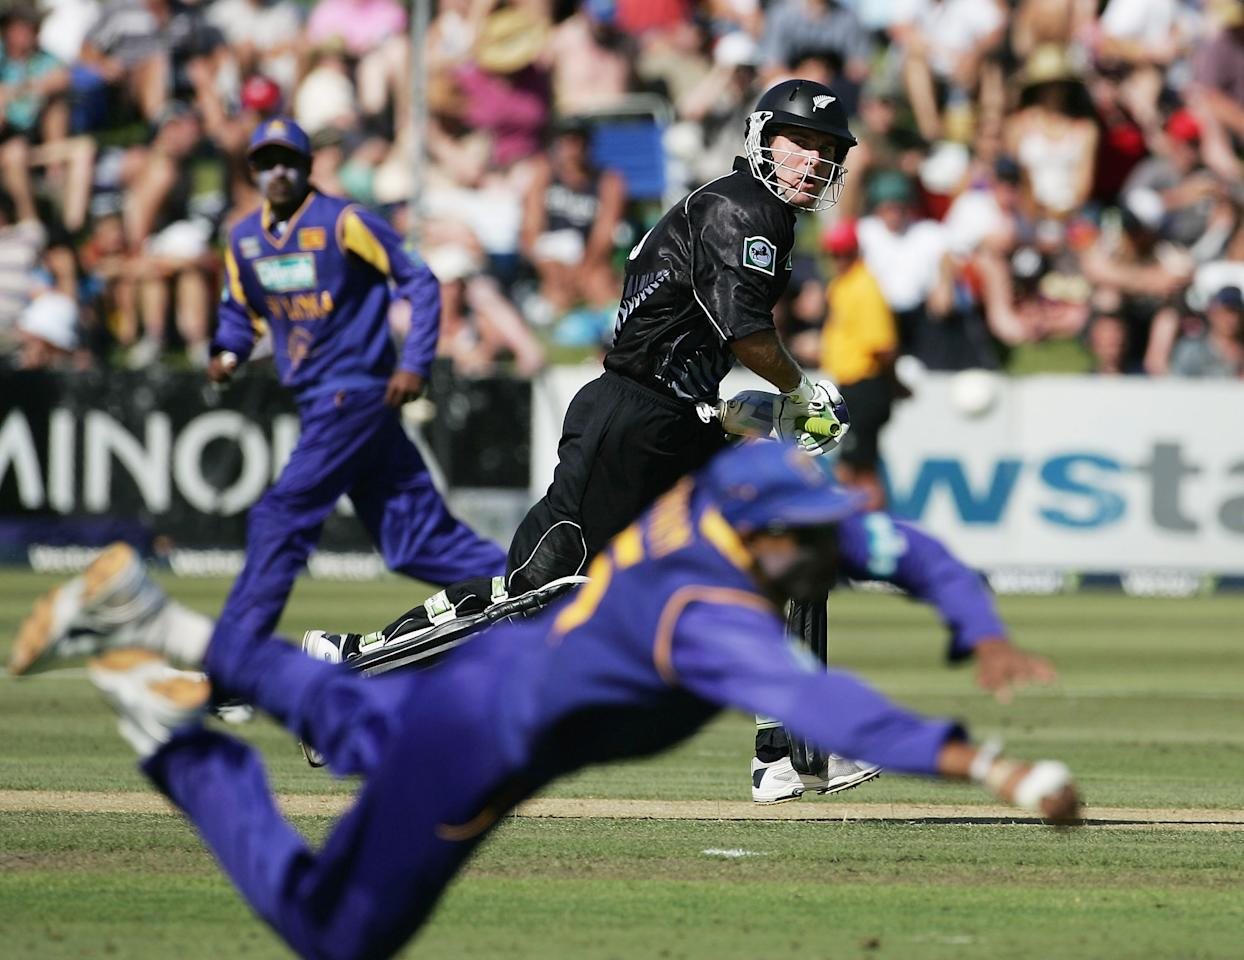 QUEENSTOWN, NEW ZEALAND - DECEMBER 31:  Jamie How of New Zealand watches the ball pass a Sri Lankan fielder during the first One Day International match between New Zealand and Sri Lanka at the Queenstown Events Centre December 31, 2005 in Queenstown, New Zealand.  (Photo by Phil Walter/Getty Images)